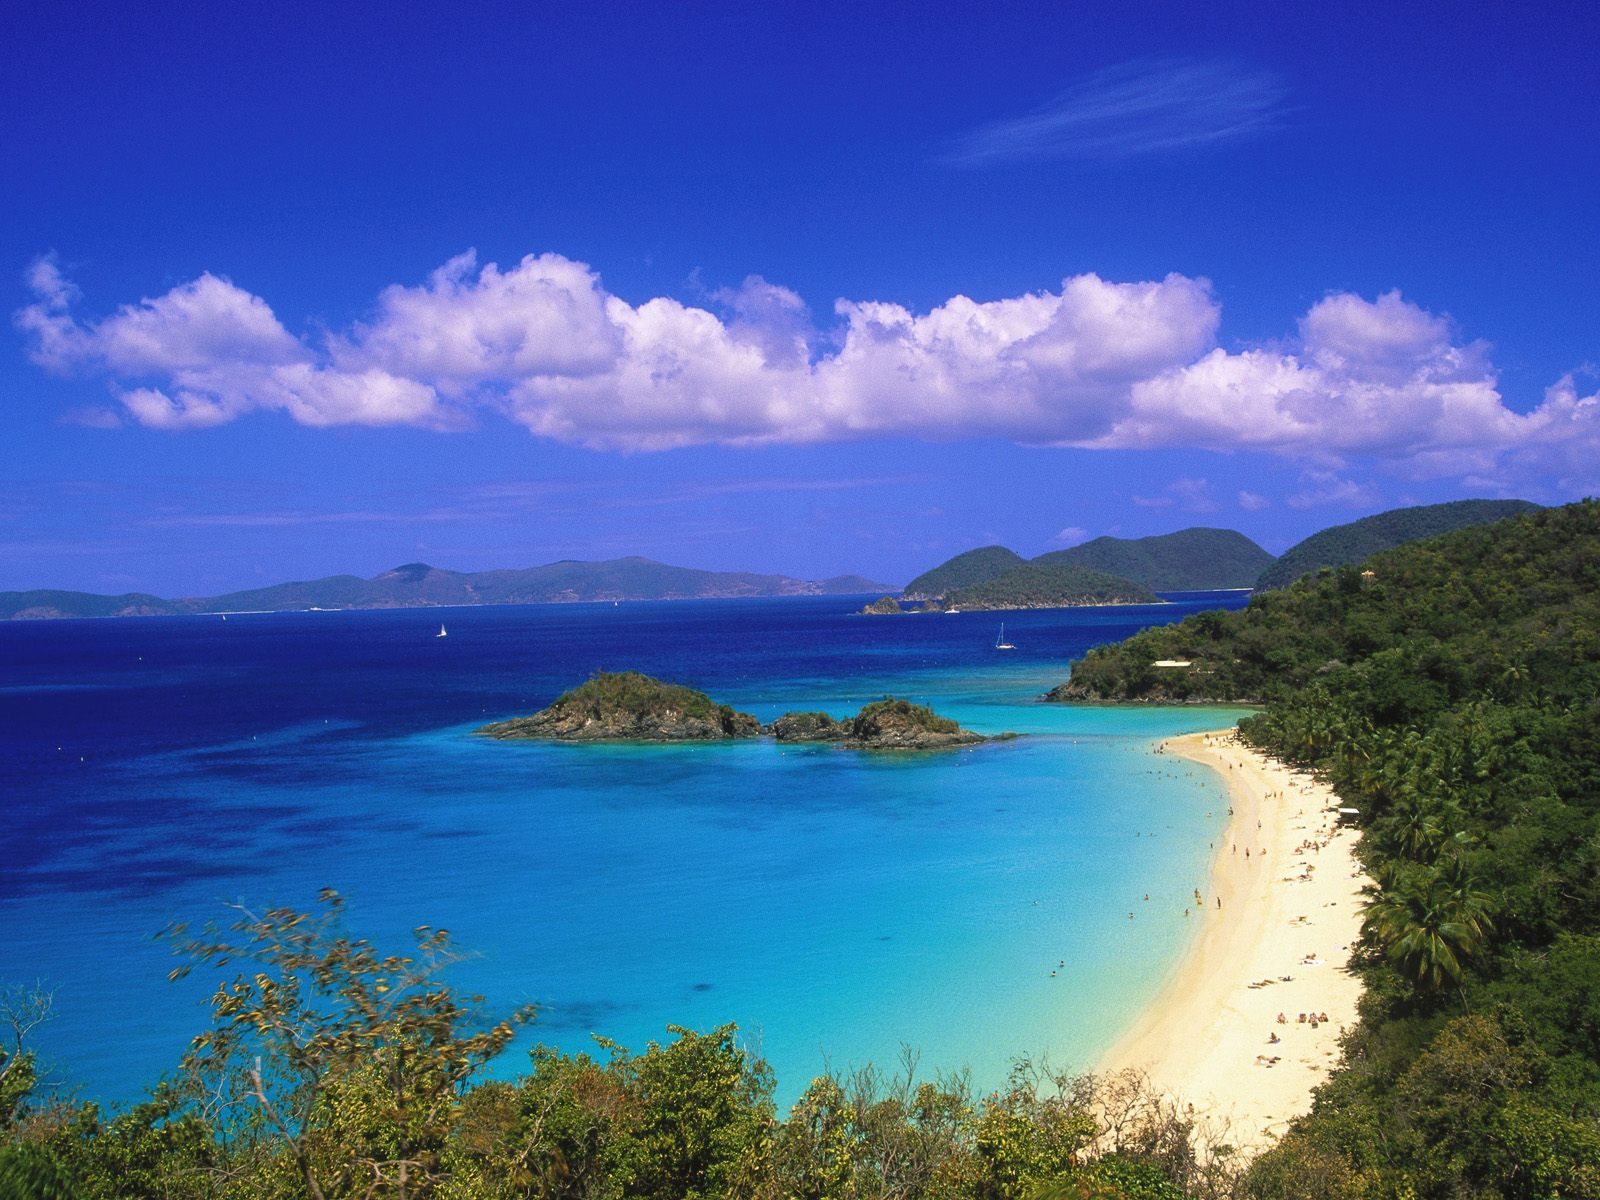 Trunk Bay US Virgin Islands90241402 - Trunk Bay US Virgin Islands - Virgin, Trunk, Philipsburg, Islands